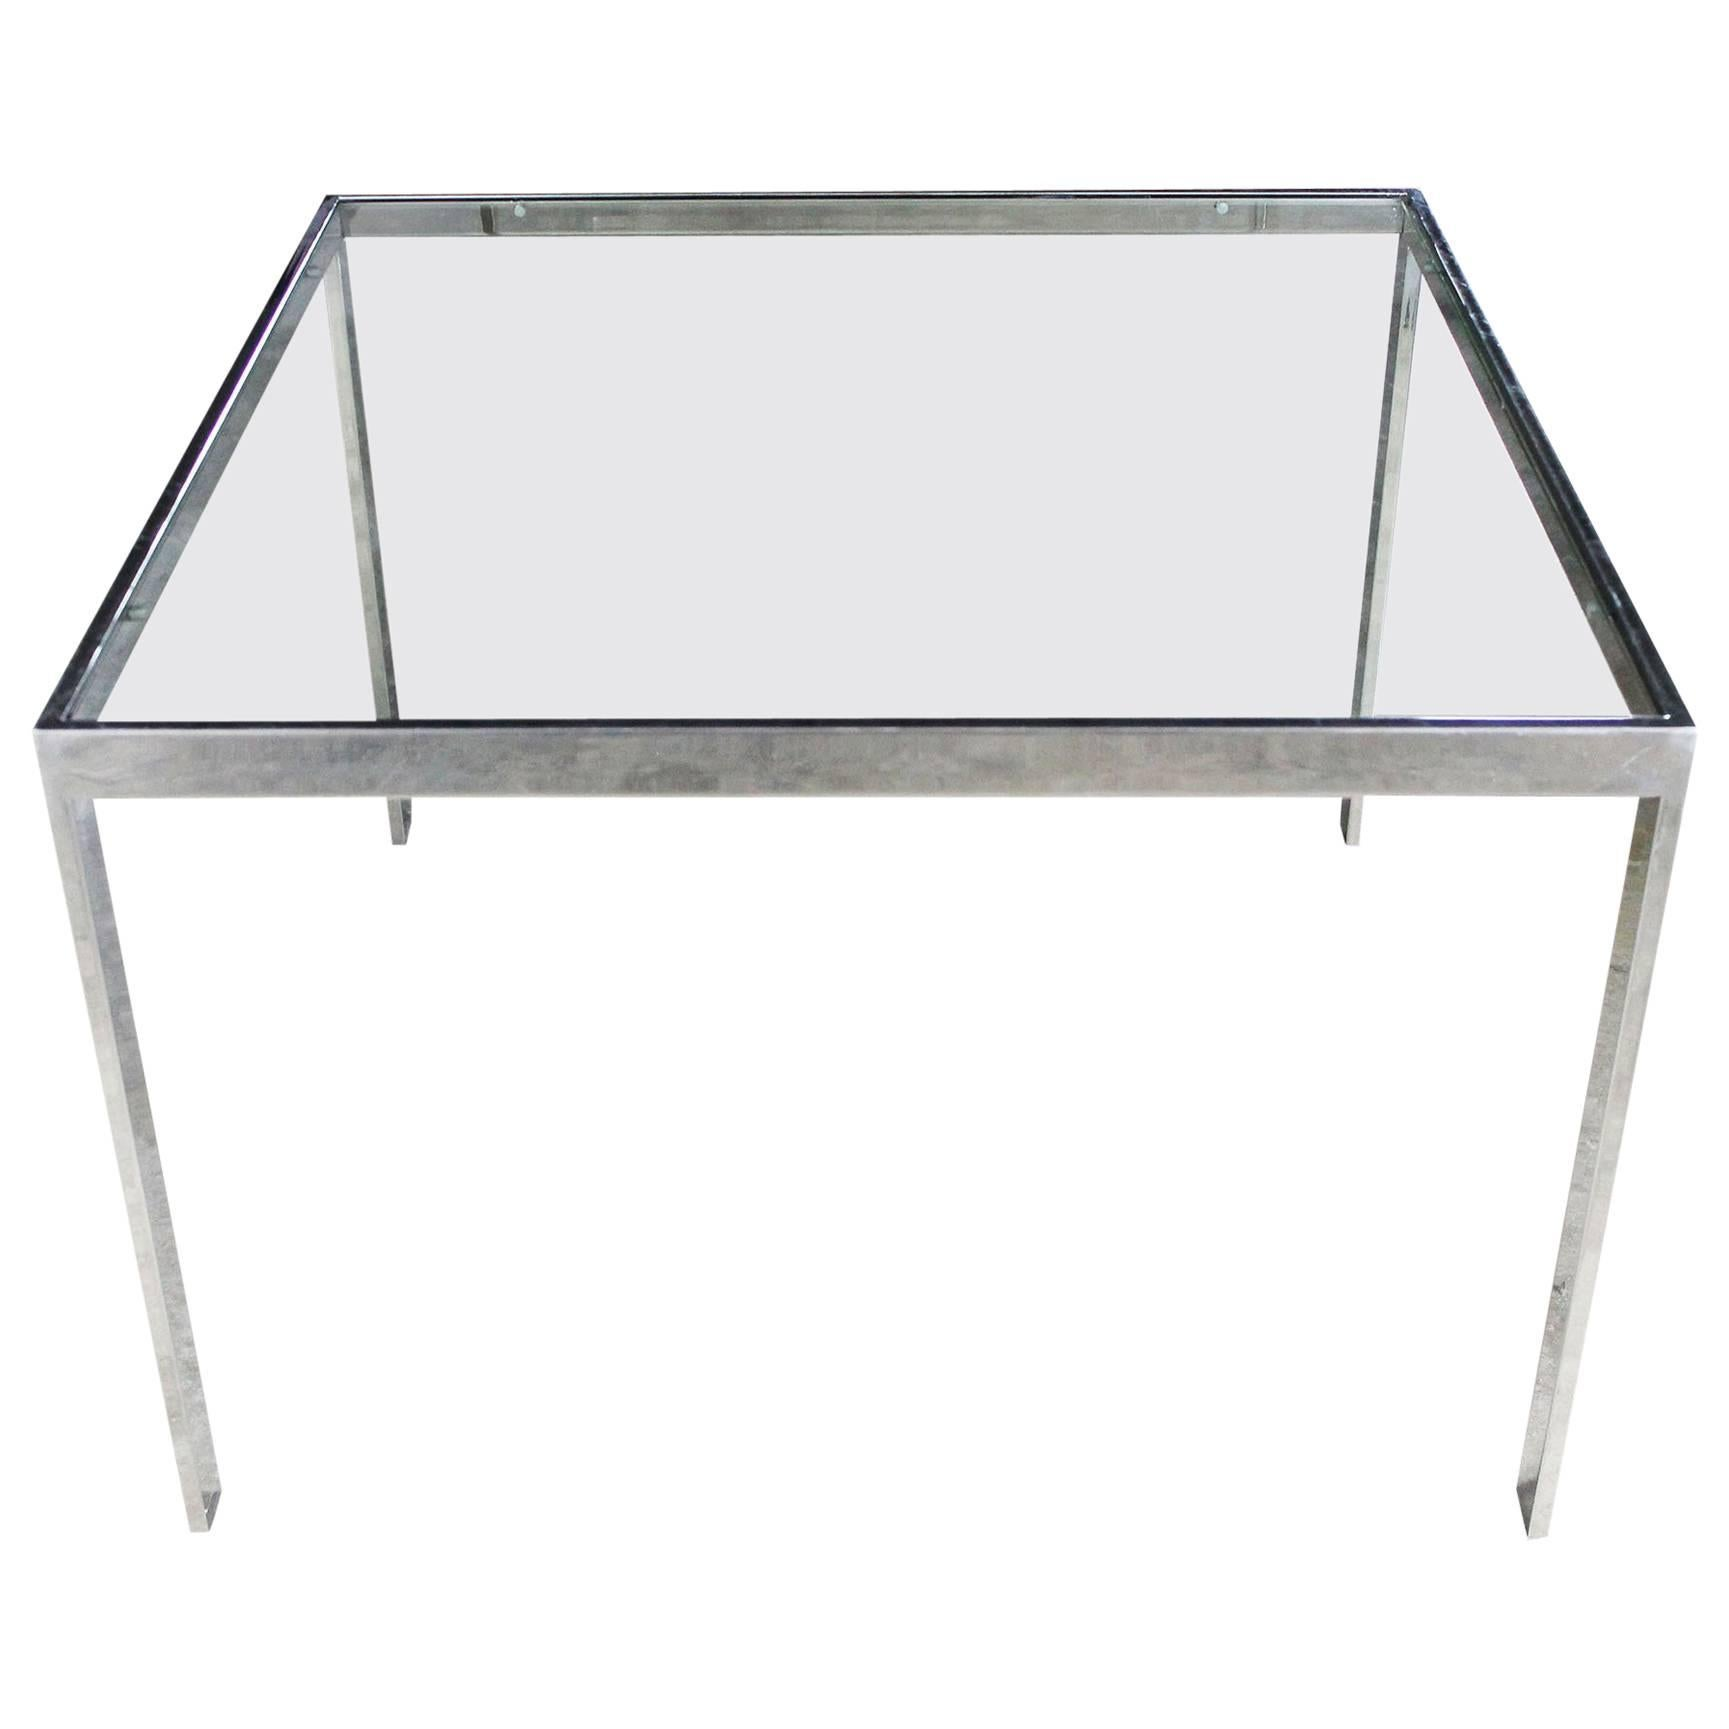 High Quality Chrome And Glass Milo Baughman Attributed Parsons Style End Table Vintage  Modern 1